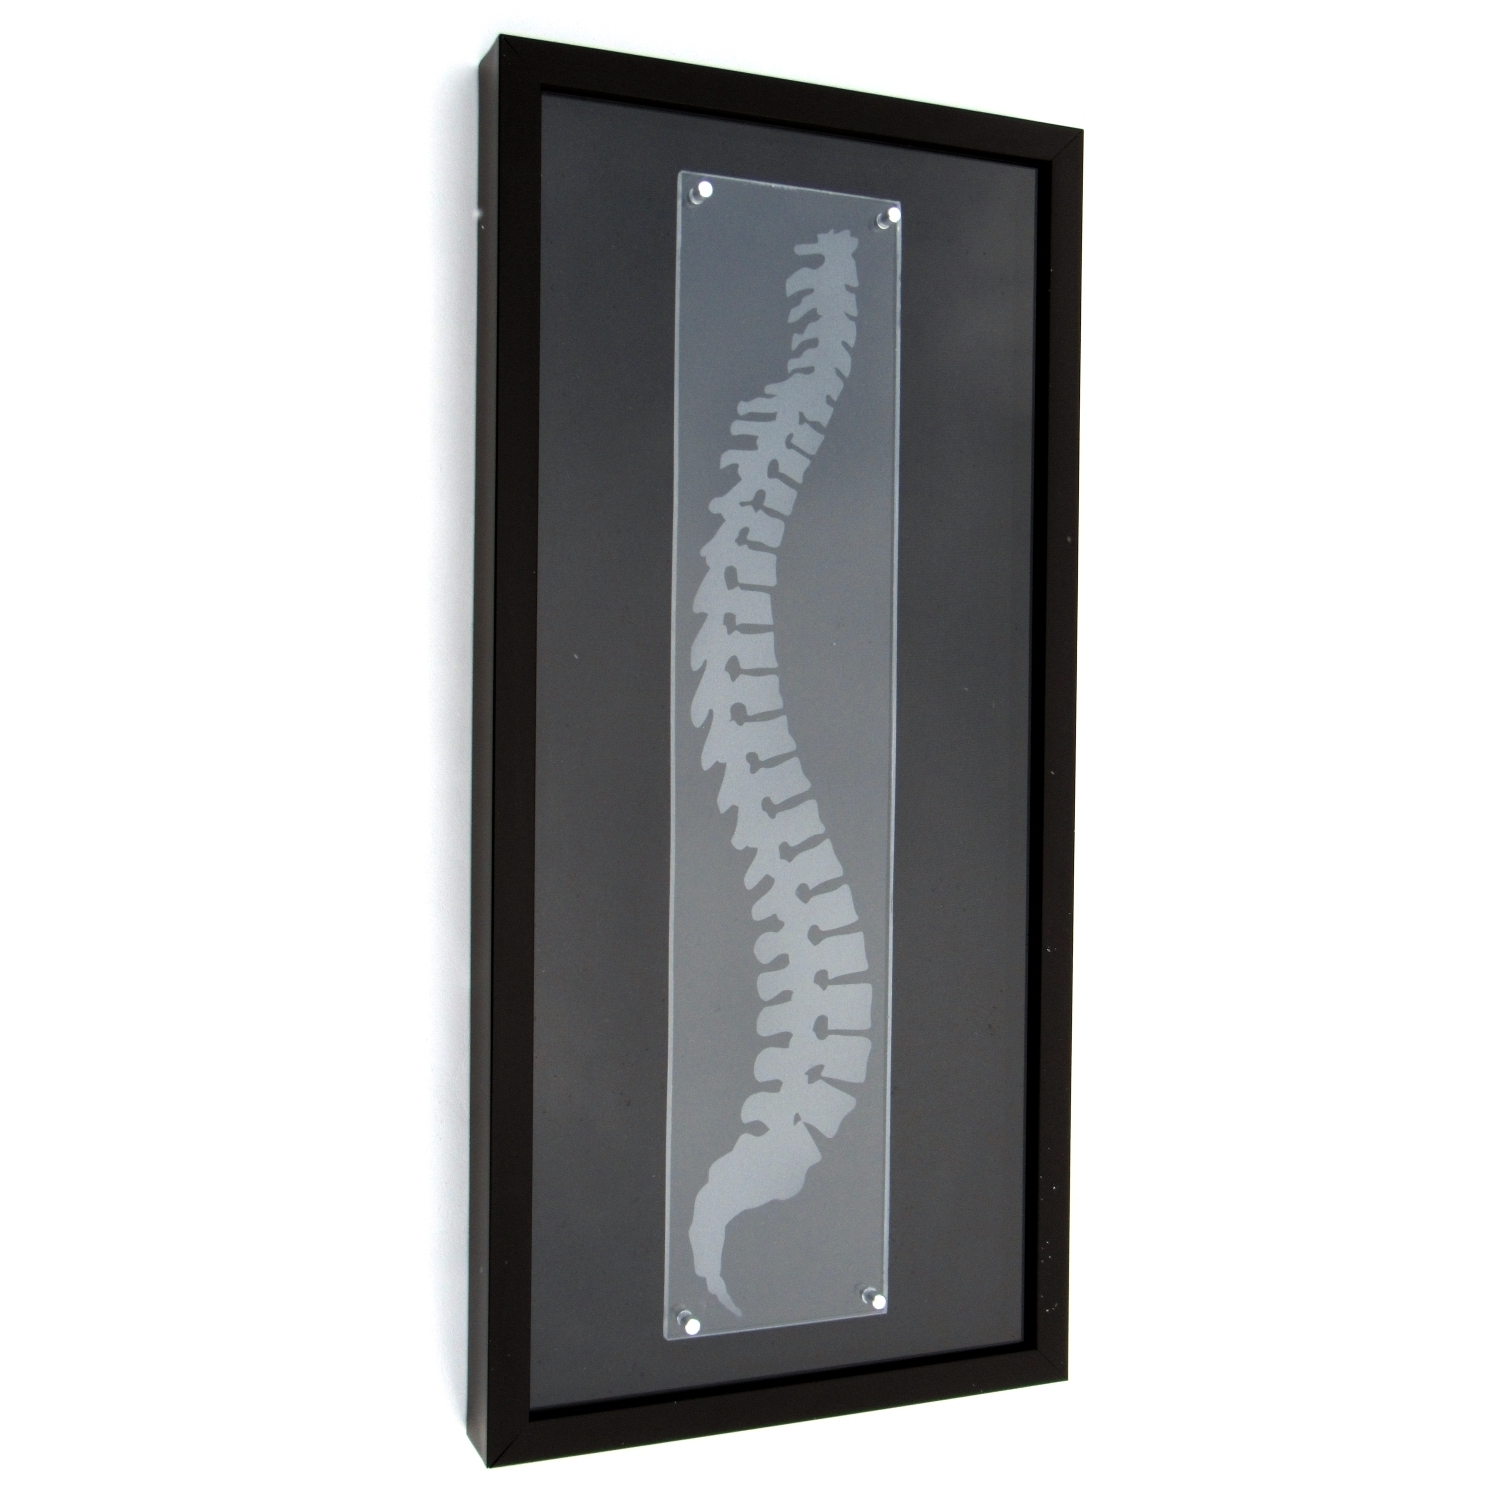 Chiropractic Art – Spine Shadowbox – Chiropracticart Within Current Chiropractic Wall Art (View 2 of 15)